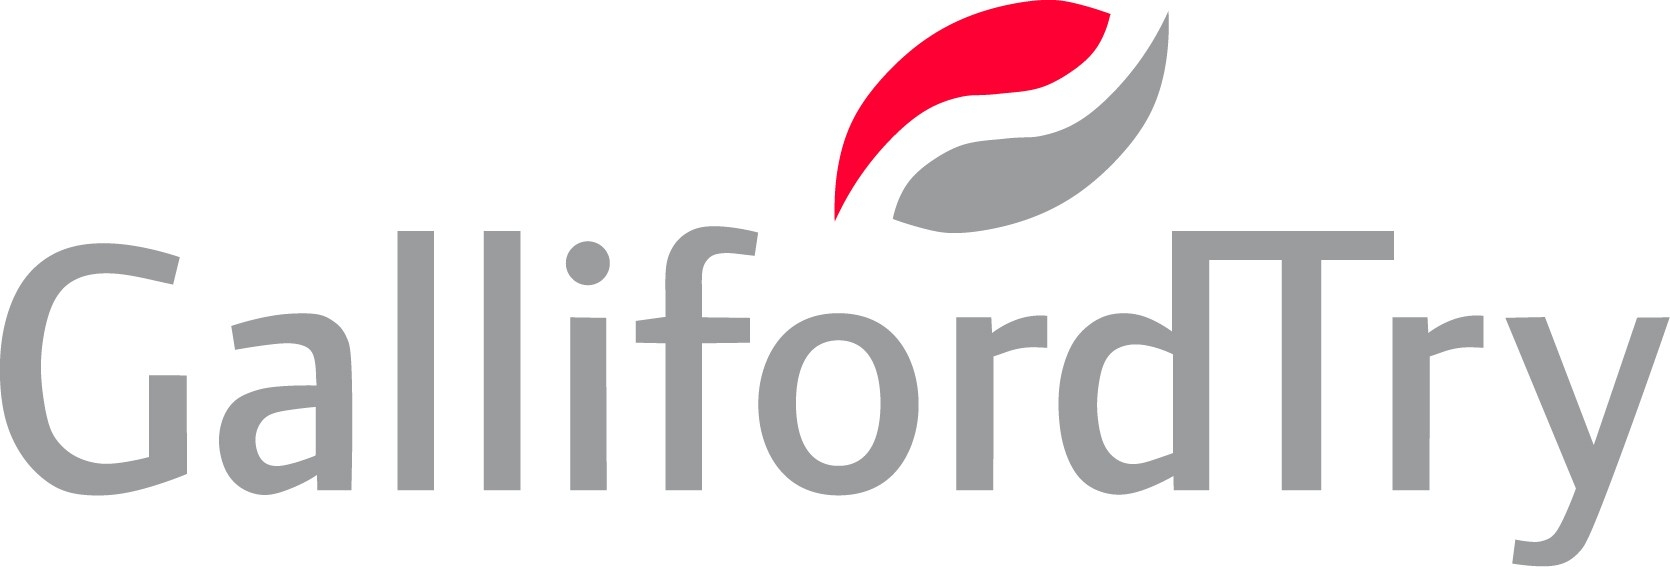 galliford-try-logo